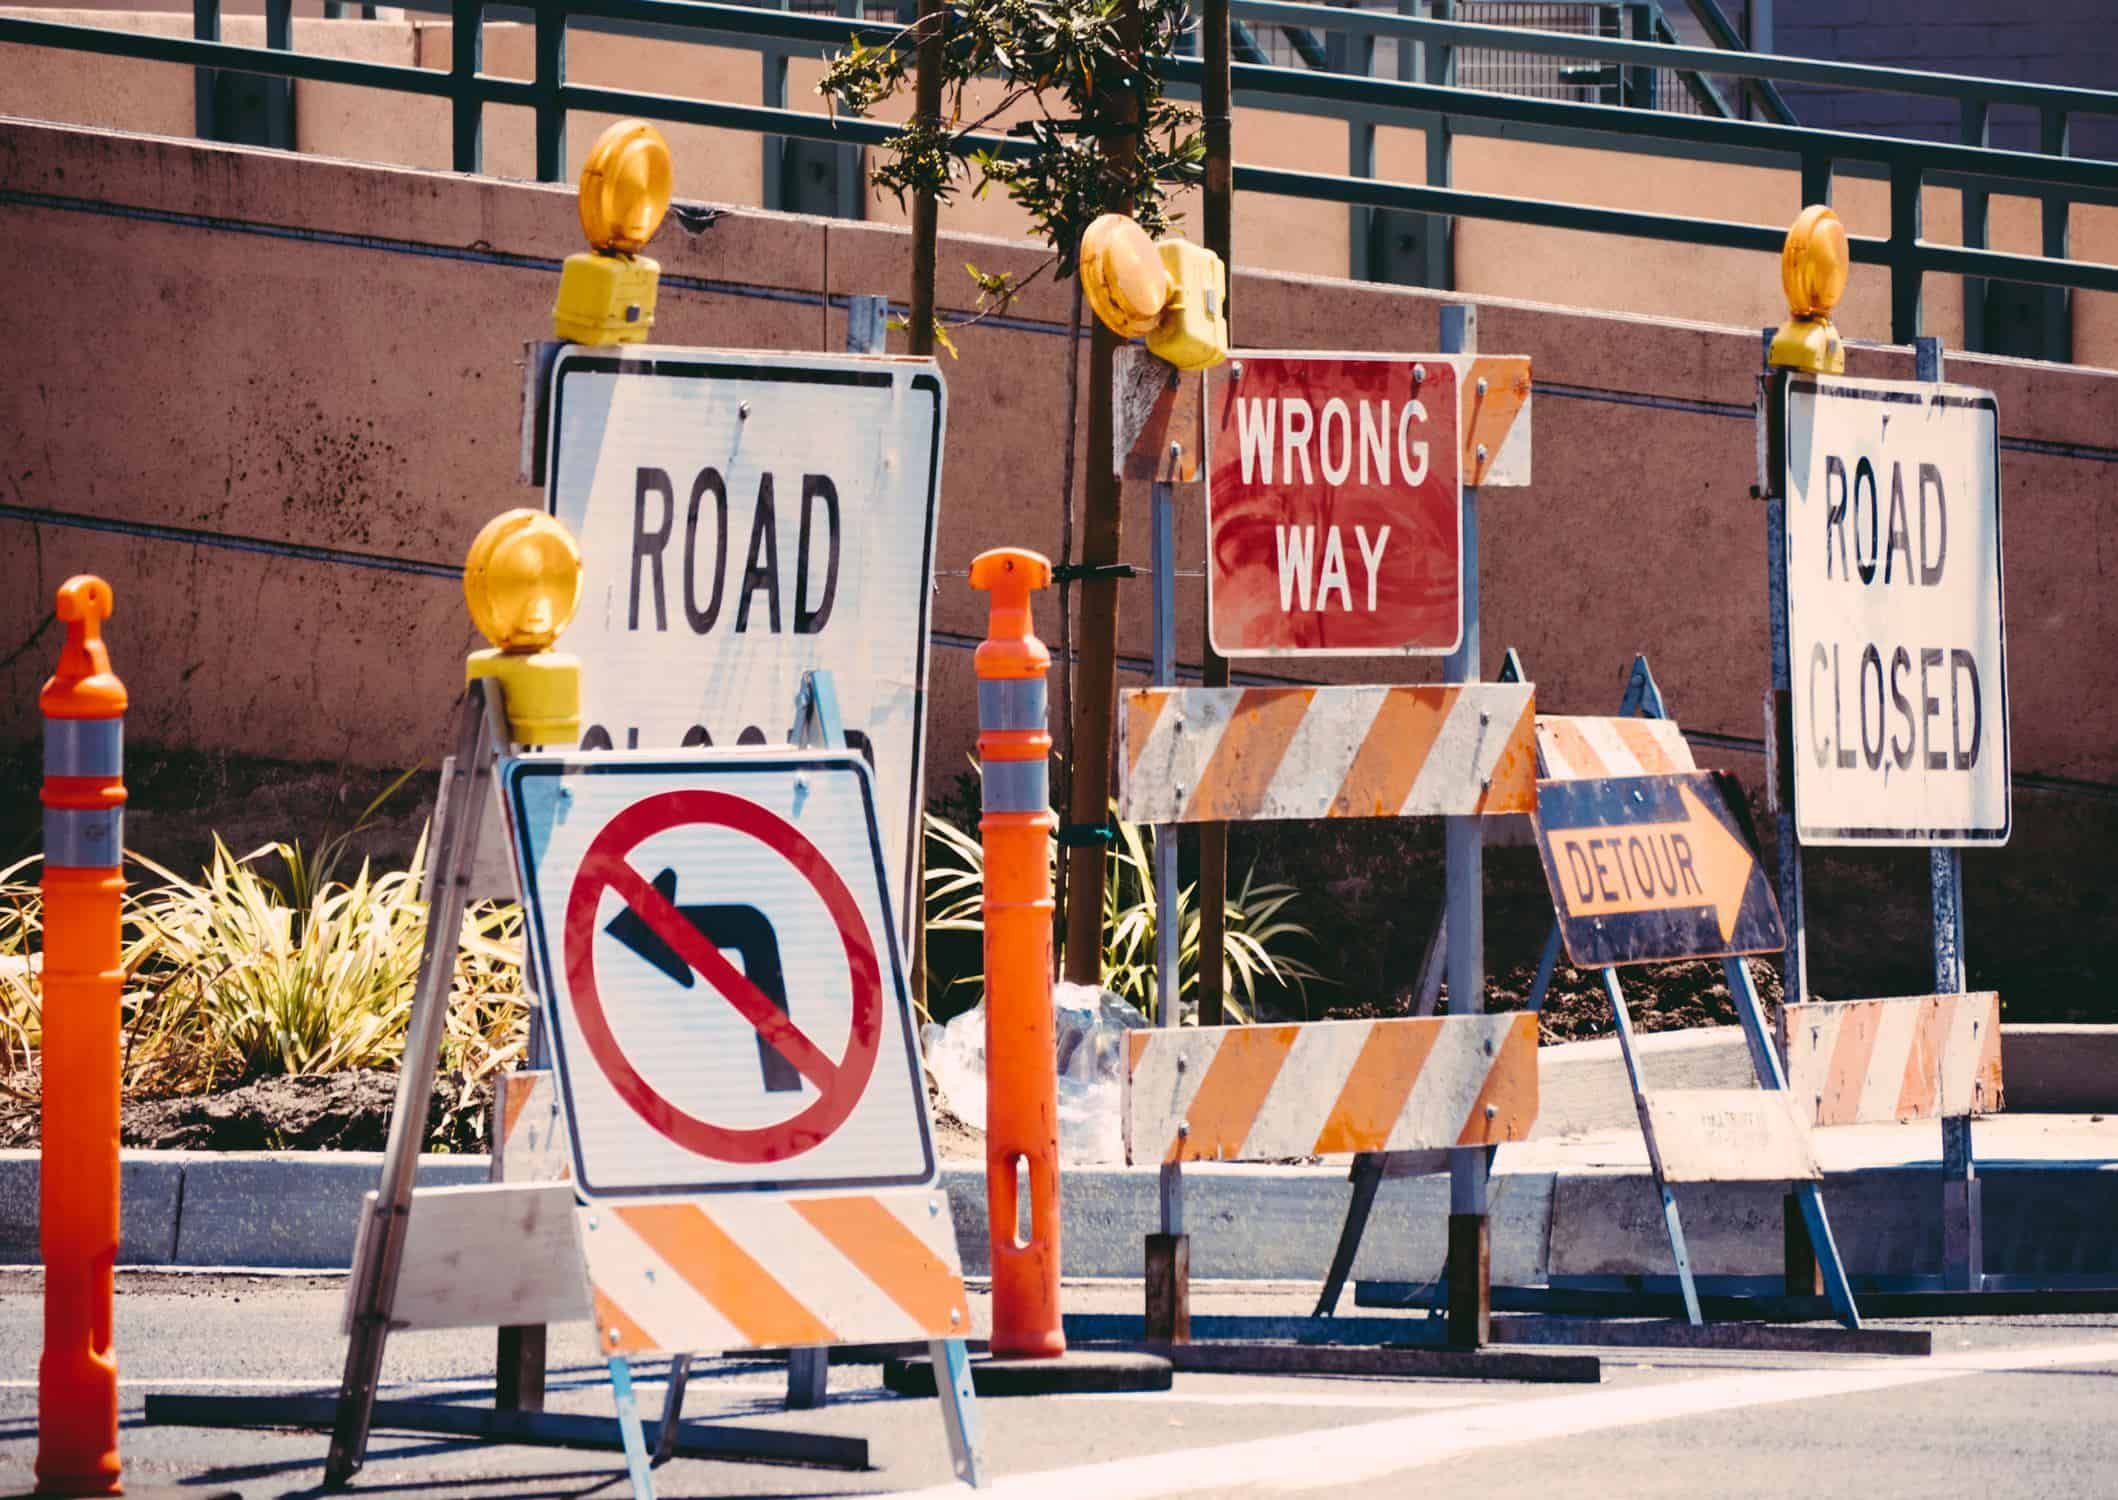 wrong way signs indicate you may be misdiagnosed by your doctor!